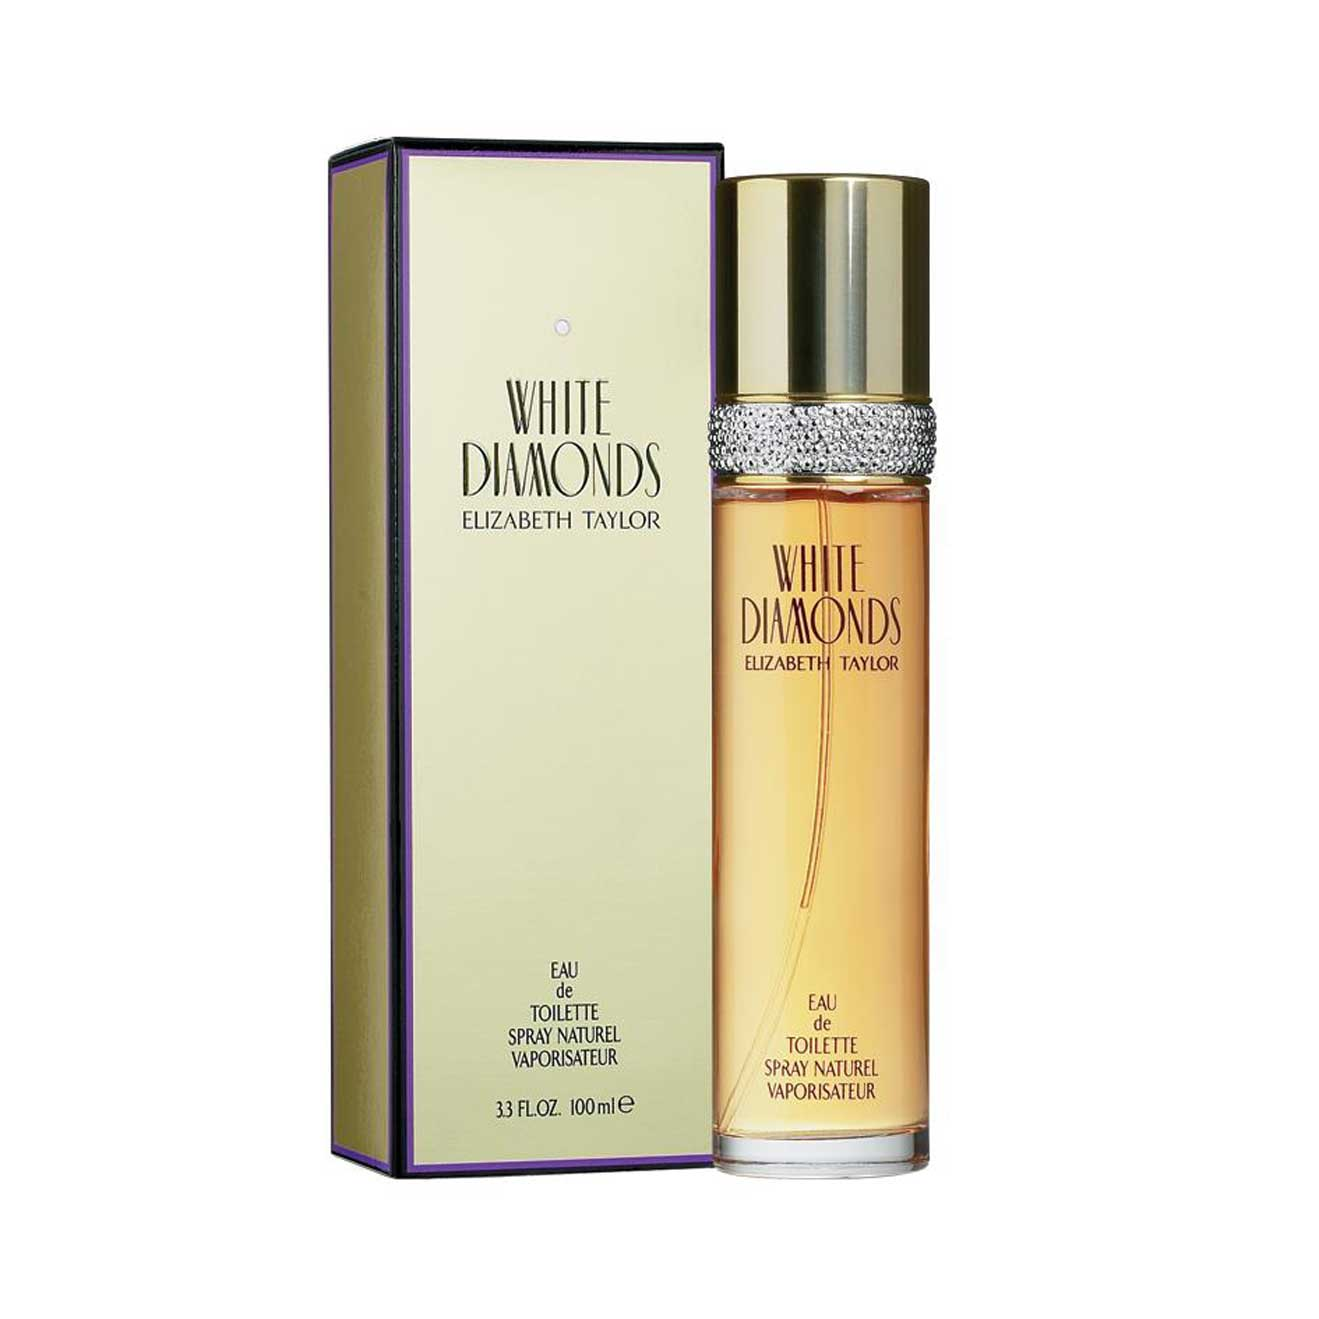 White Diamonds EDT Spray Natural 100ml